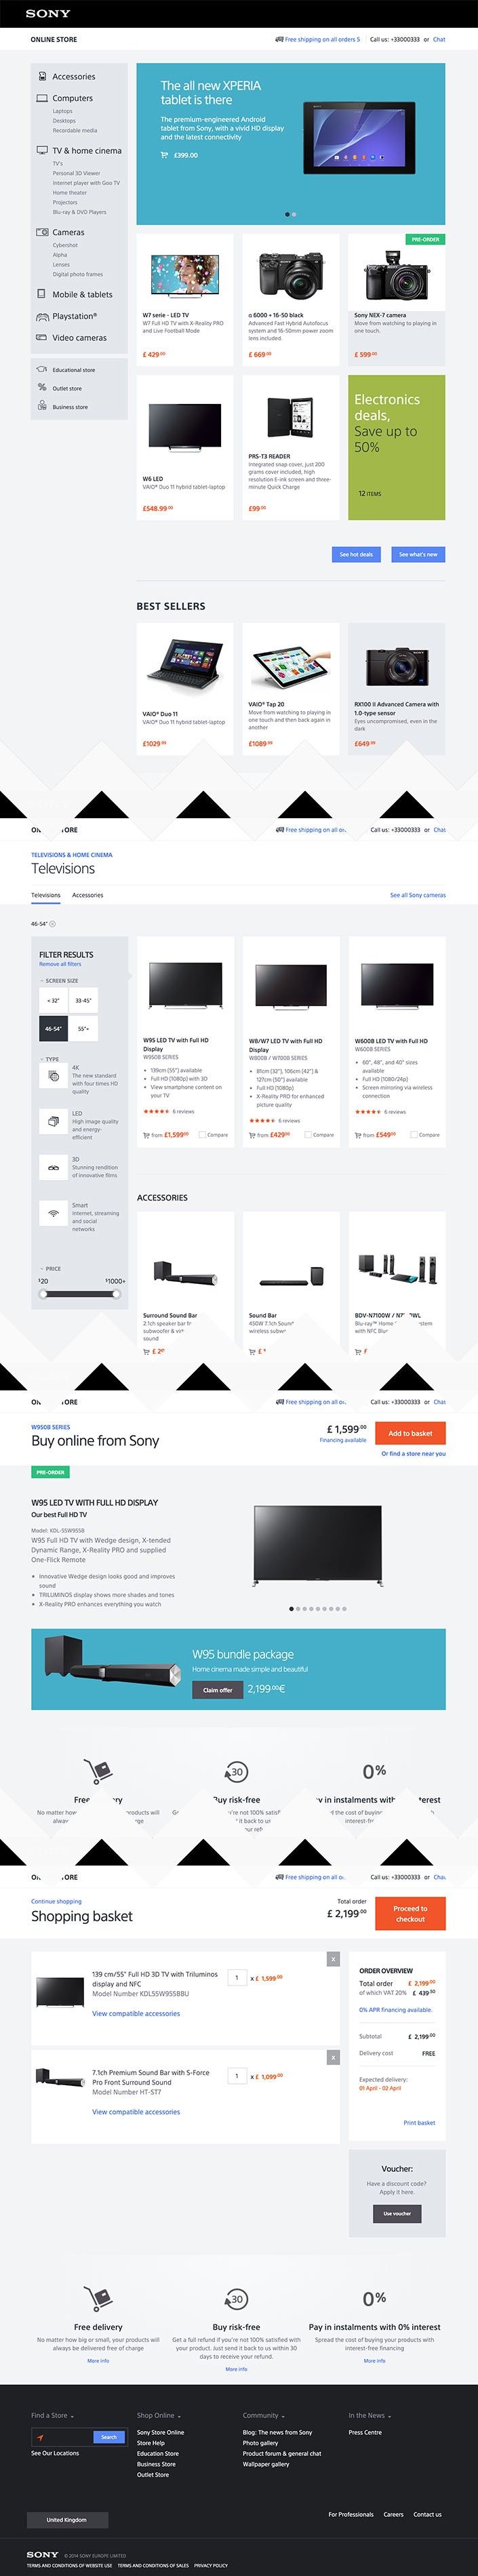 Sony-E-Commerce-Mobile-Journey